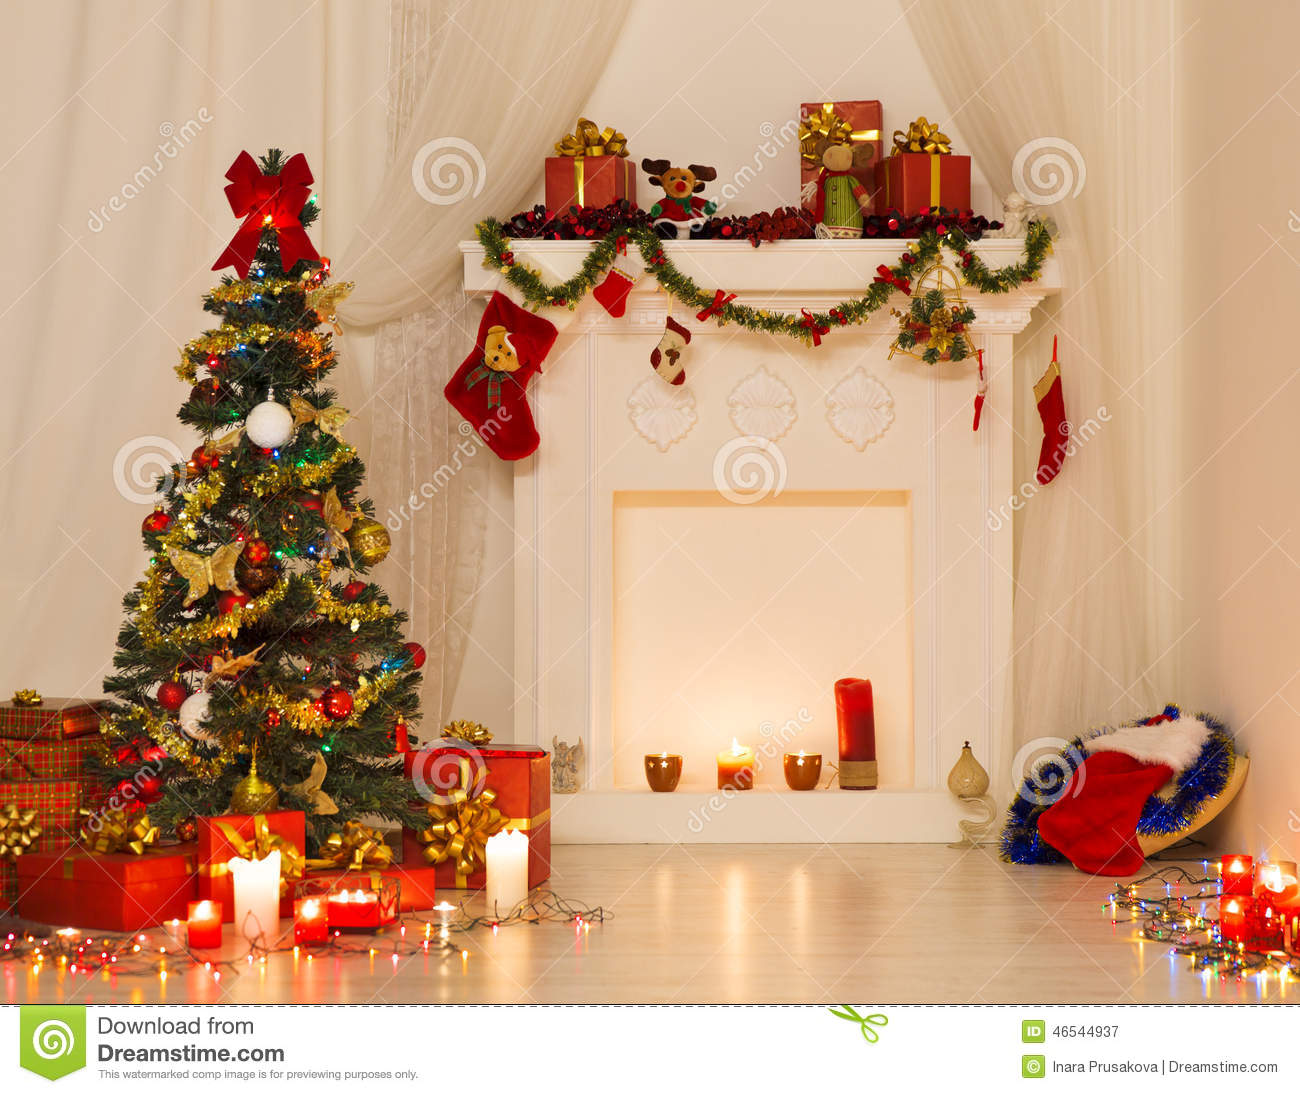 Christmas room interior design xmas tree decorated by for Interior design gifts